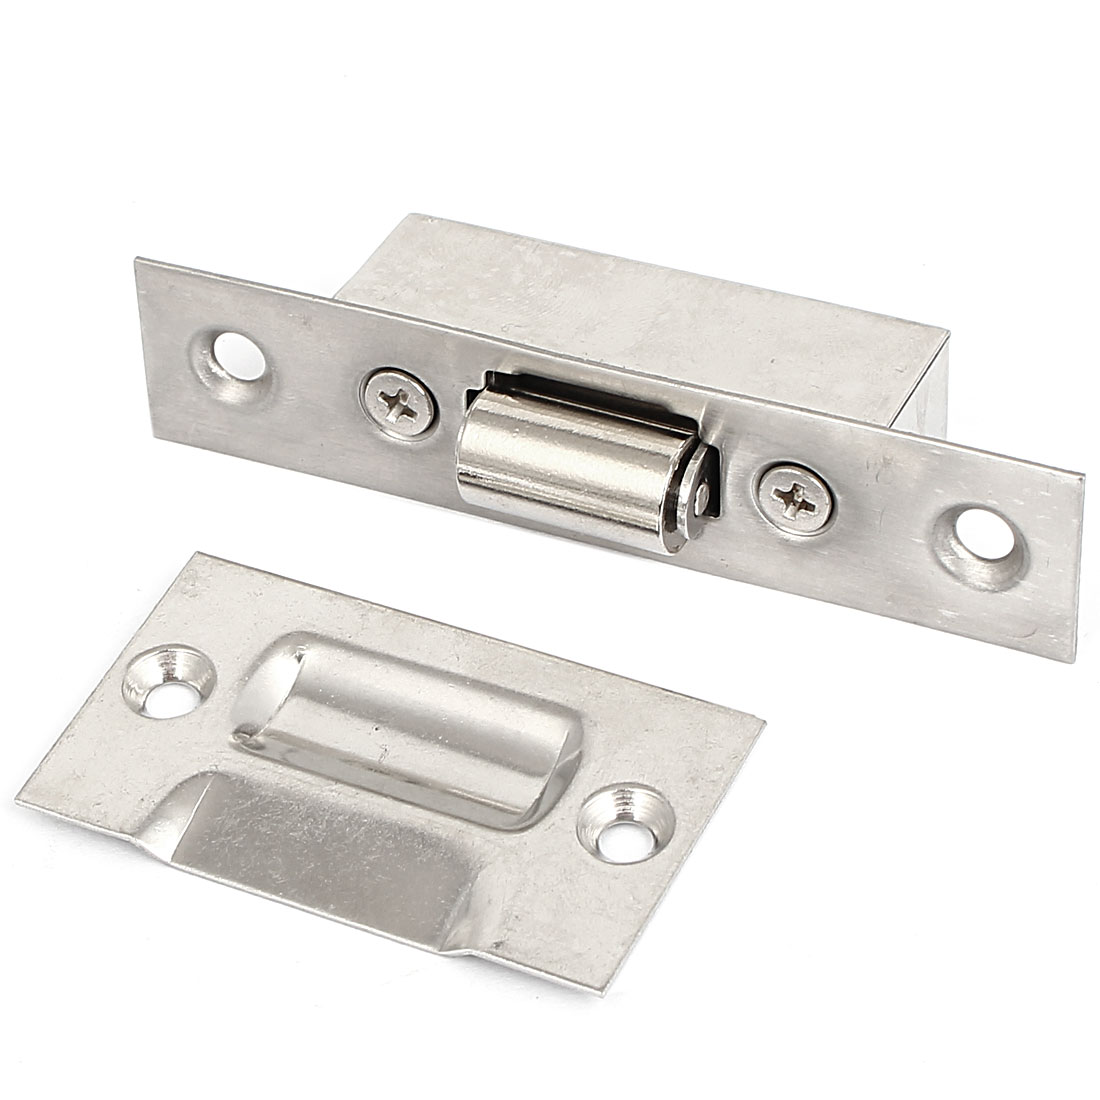 Cupboard Stainless Steel Door Latch Double Ball Catch Silver Tone 90mm Long